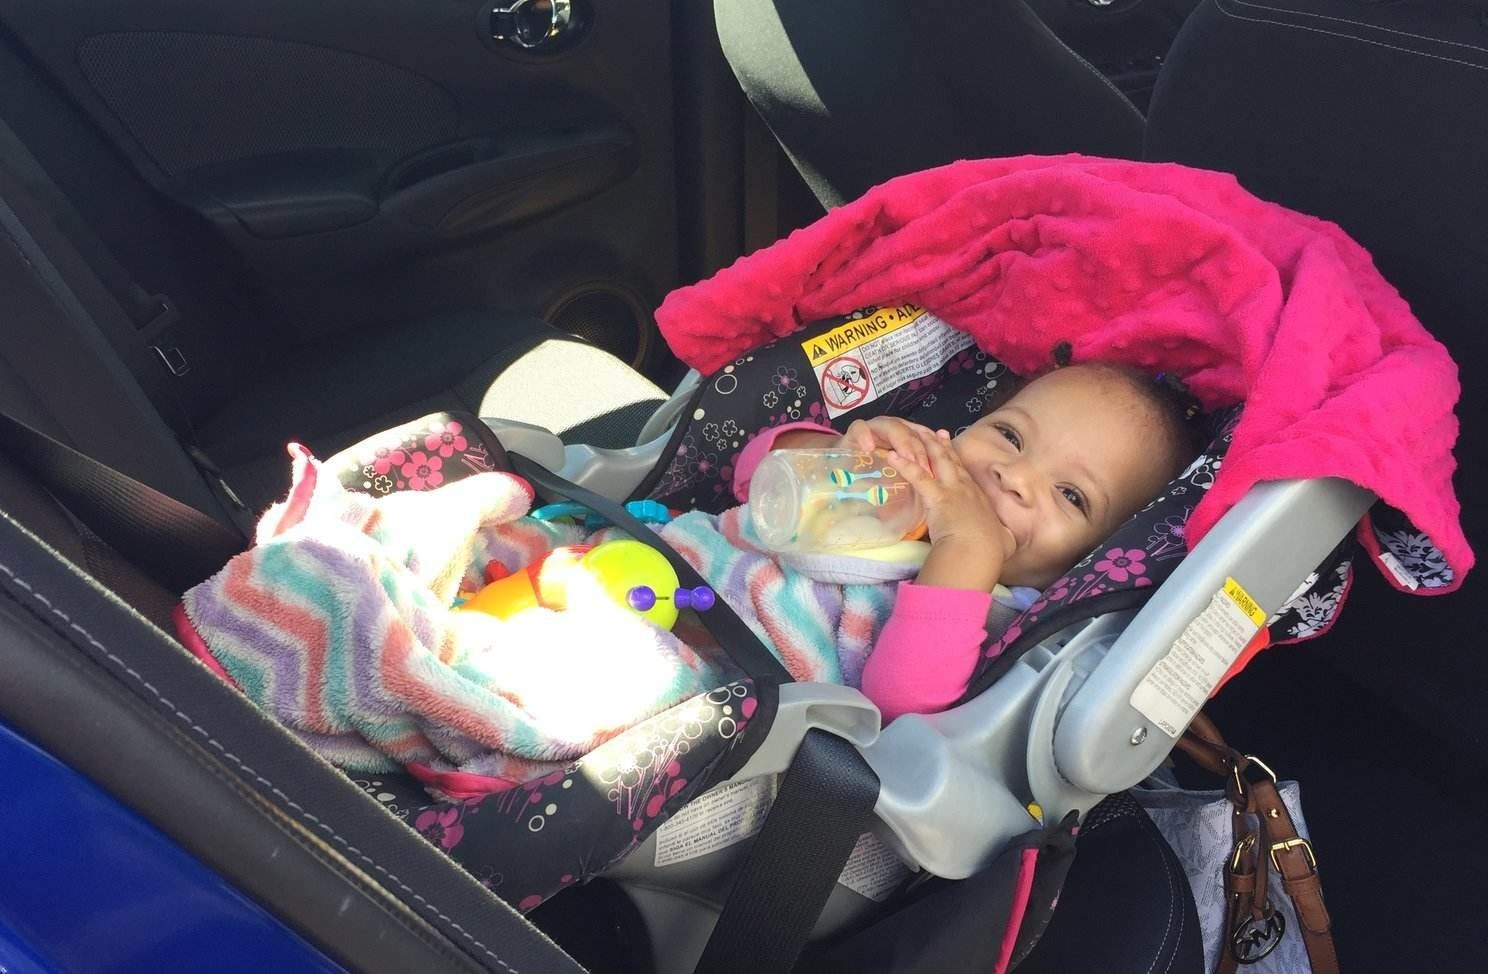 rsz_baby_in_car_seat_144471